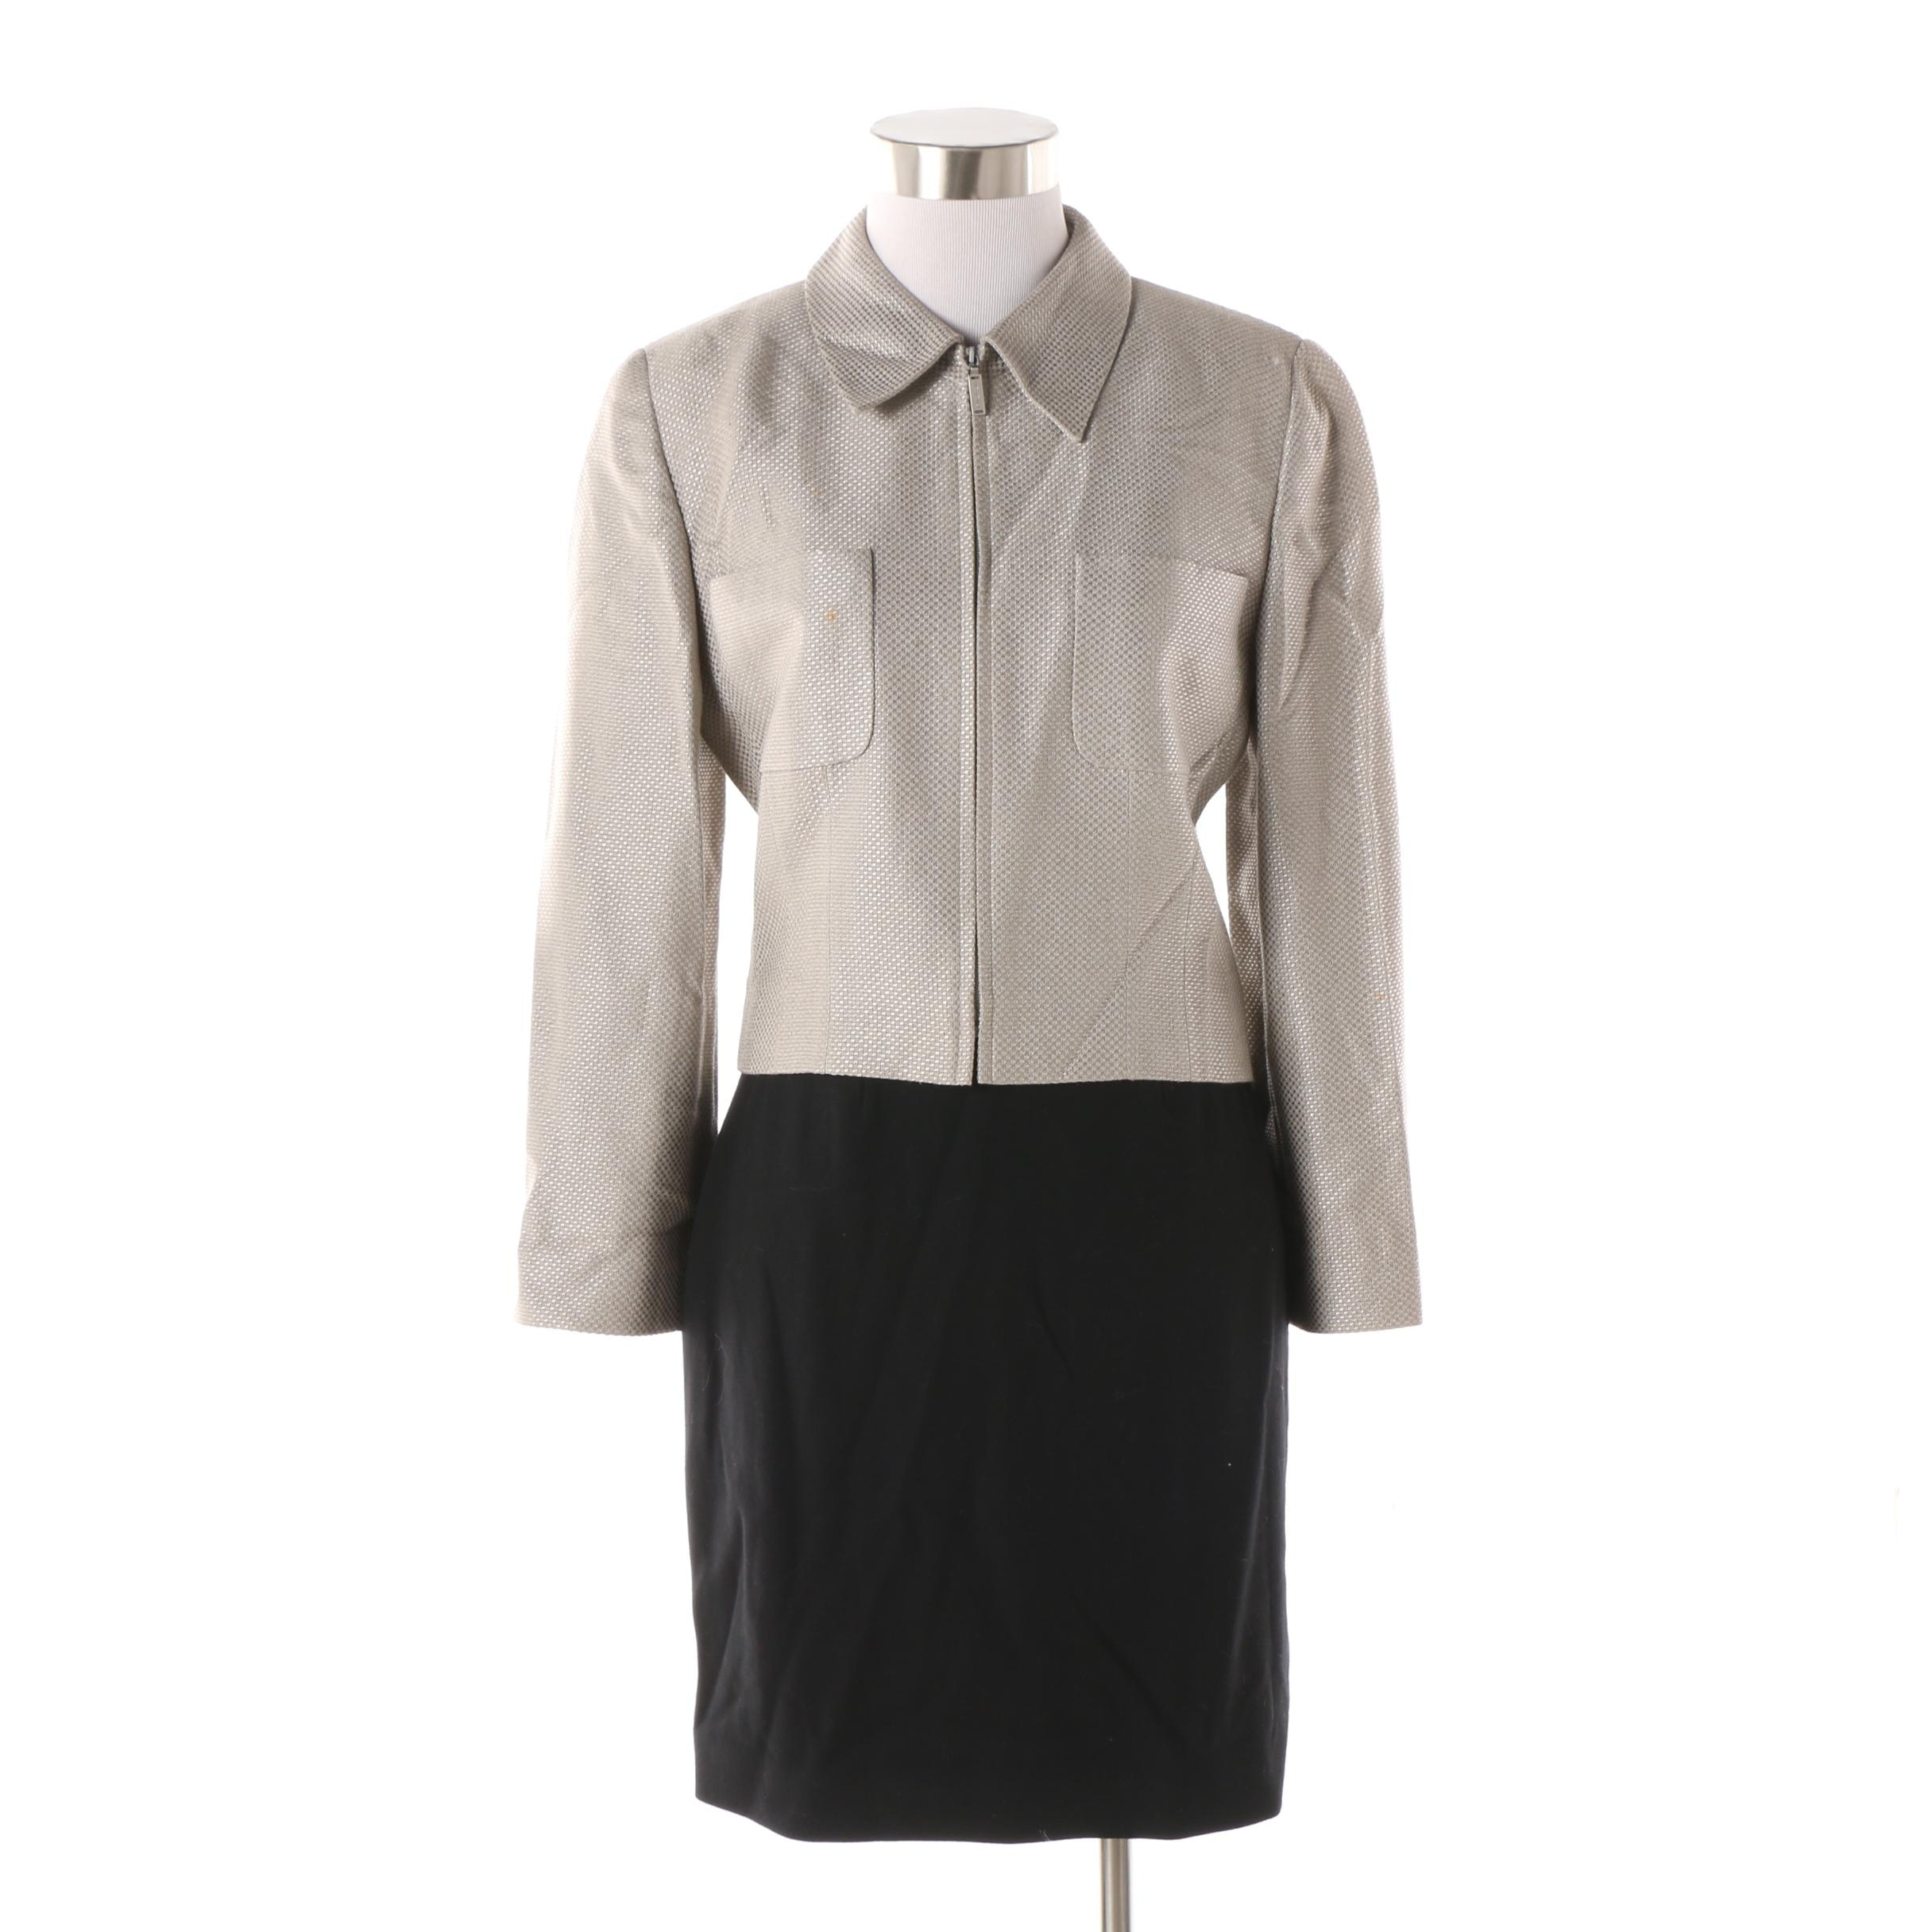 Circa 1990s Chanel Boutique Grey Zip Jacket and Black Wool Pencil Skirt